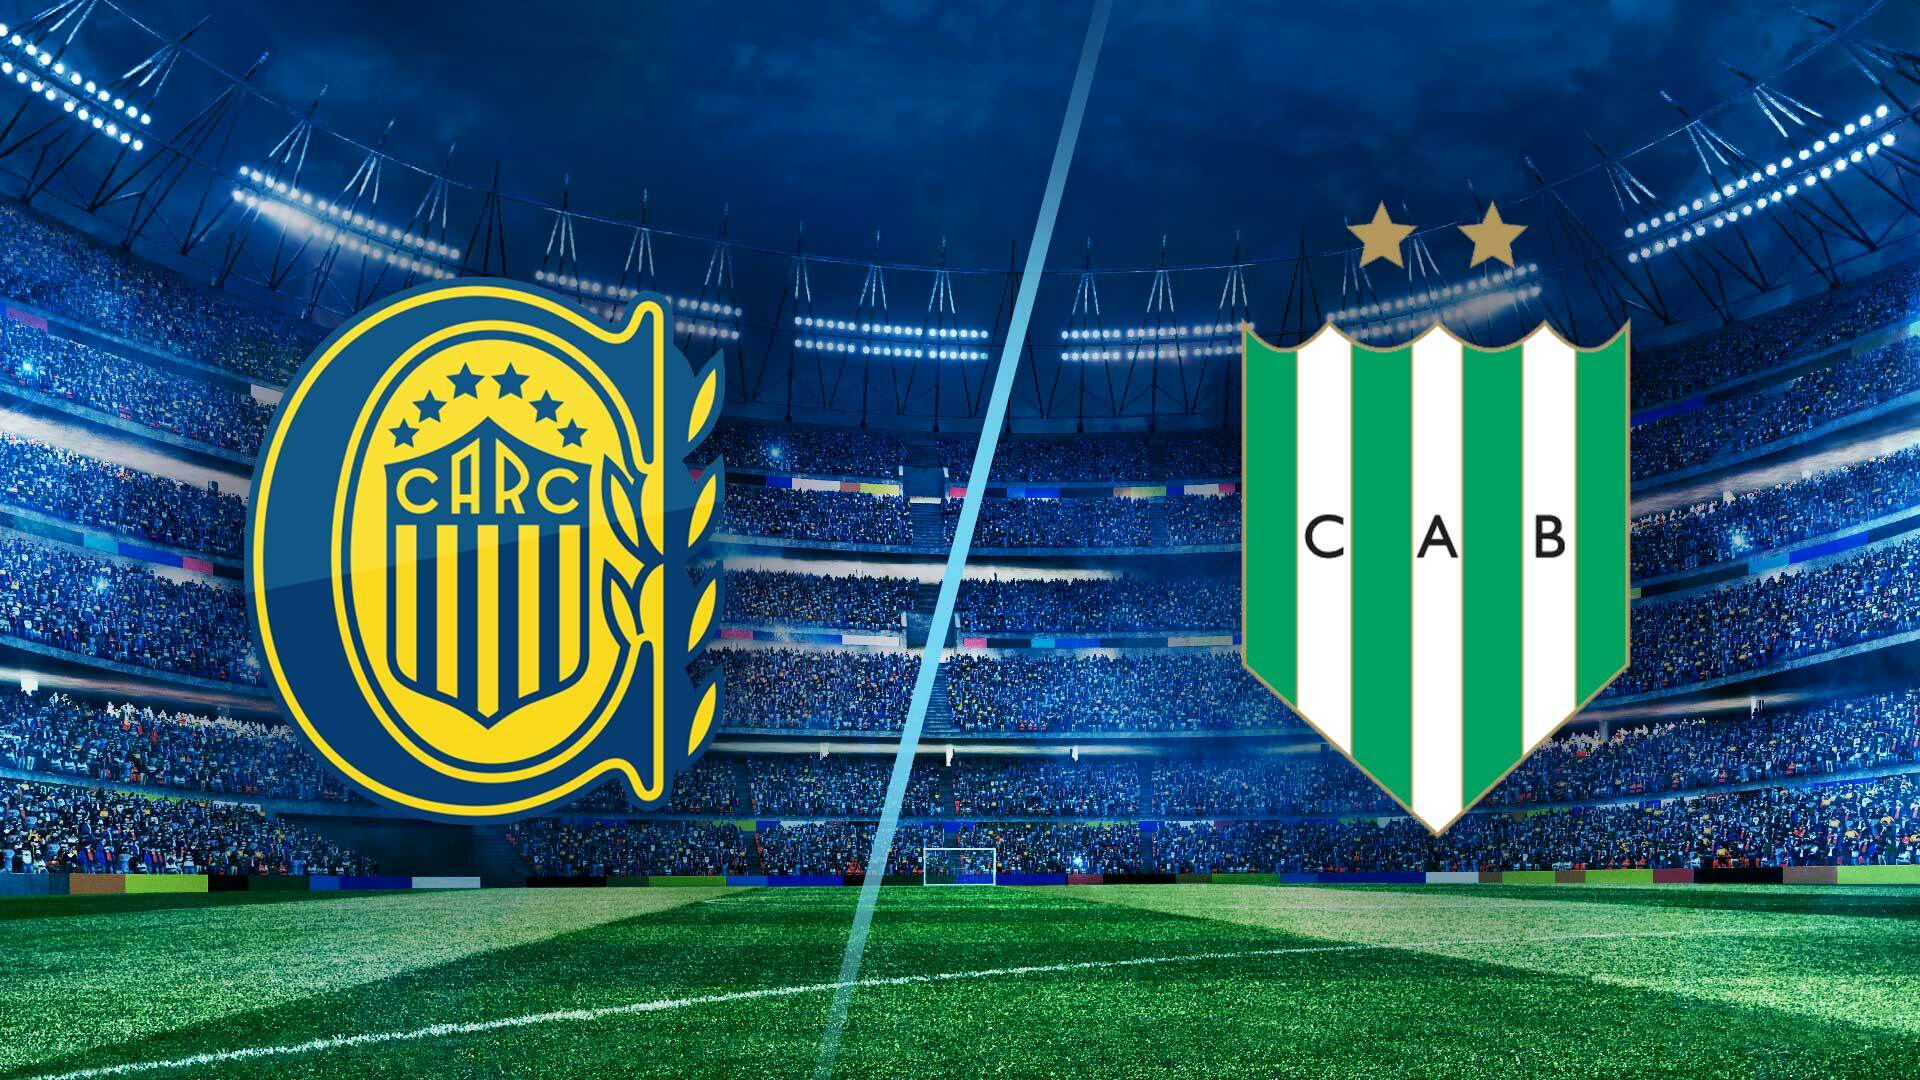 Banfield vs rosario central's head to head record shows that of the 9 meetings they've had, banfield has won 4 times and rosario central has won 2 times. Watch Argentina Liga Profesional De Futbol Season 2021 Episode 34 Rosario Central Vs Banfield Full Show On Paramount Plus